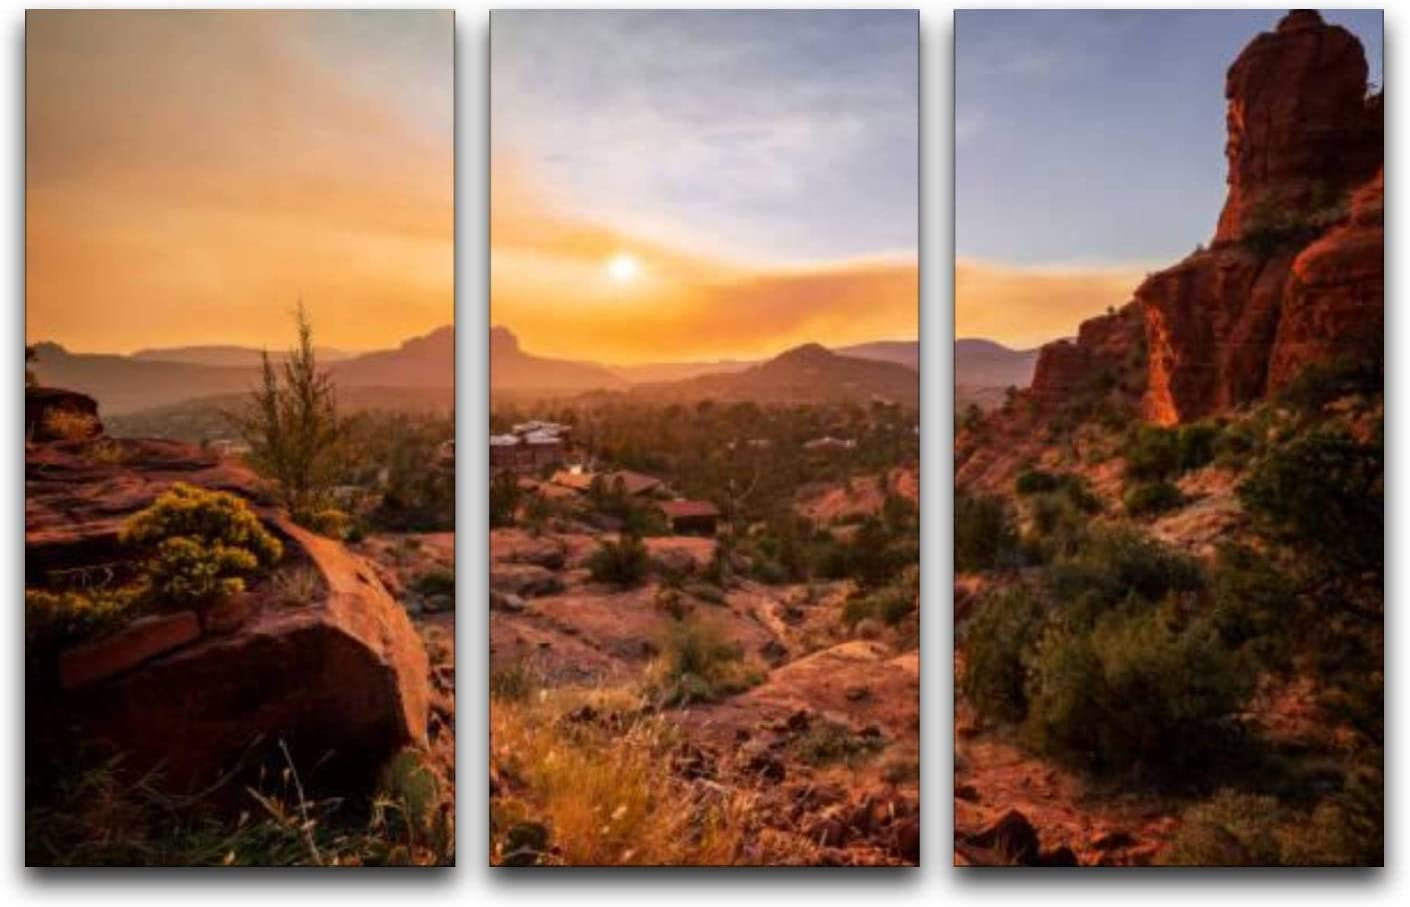 3 Panels Wall Art Pictures Sedona Super Bargain popular specialty store from the Chapel view at sunset